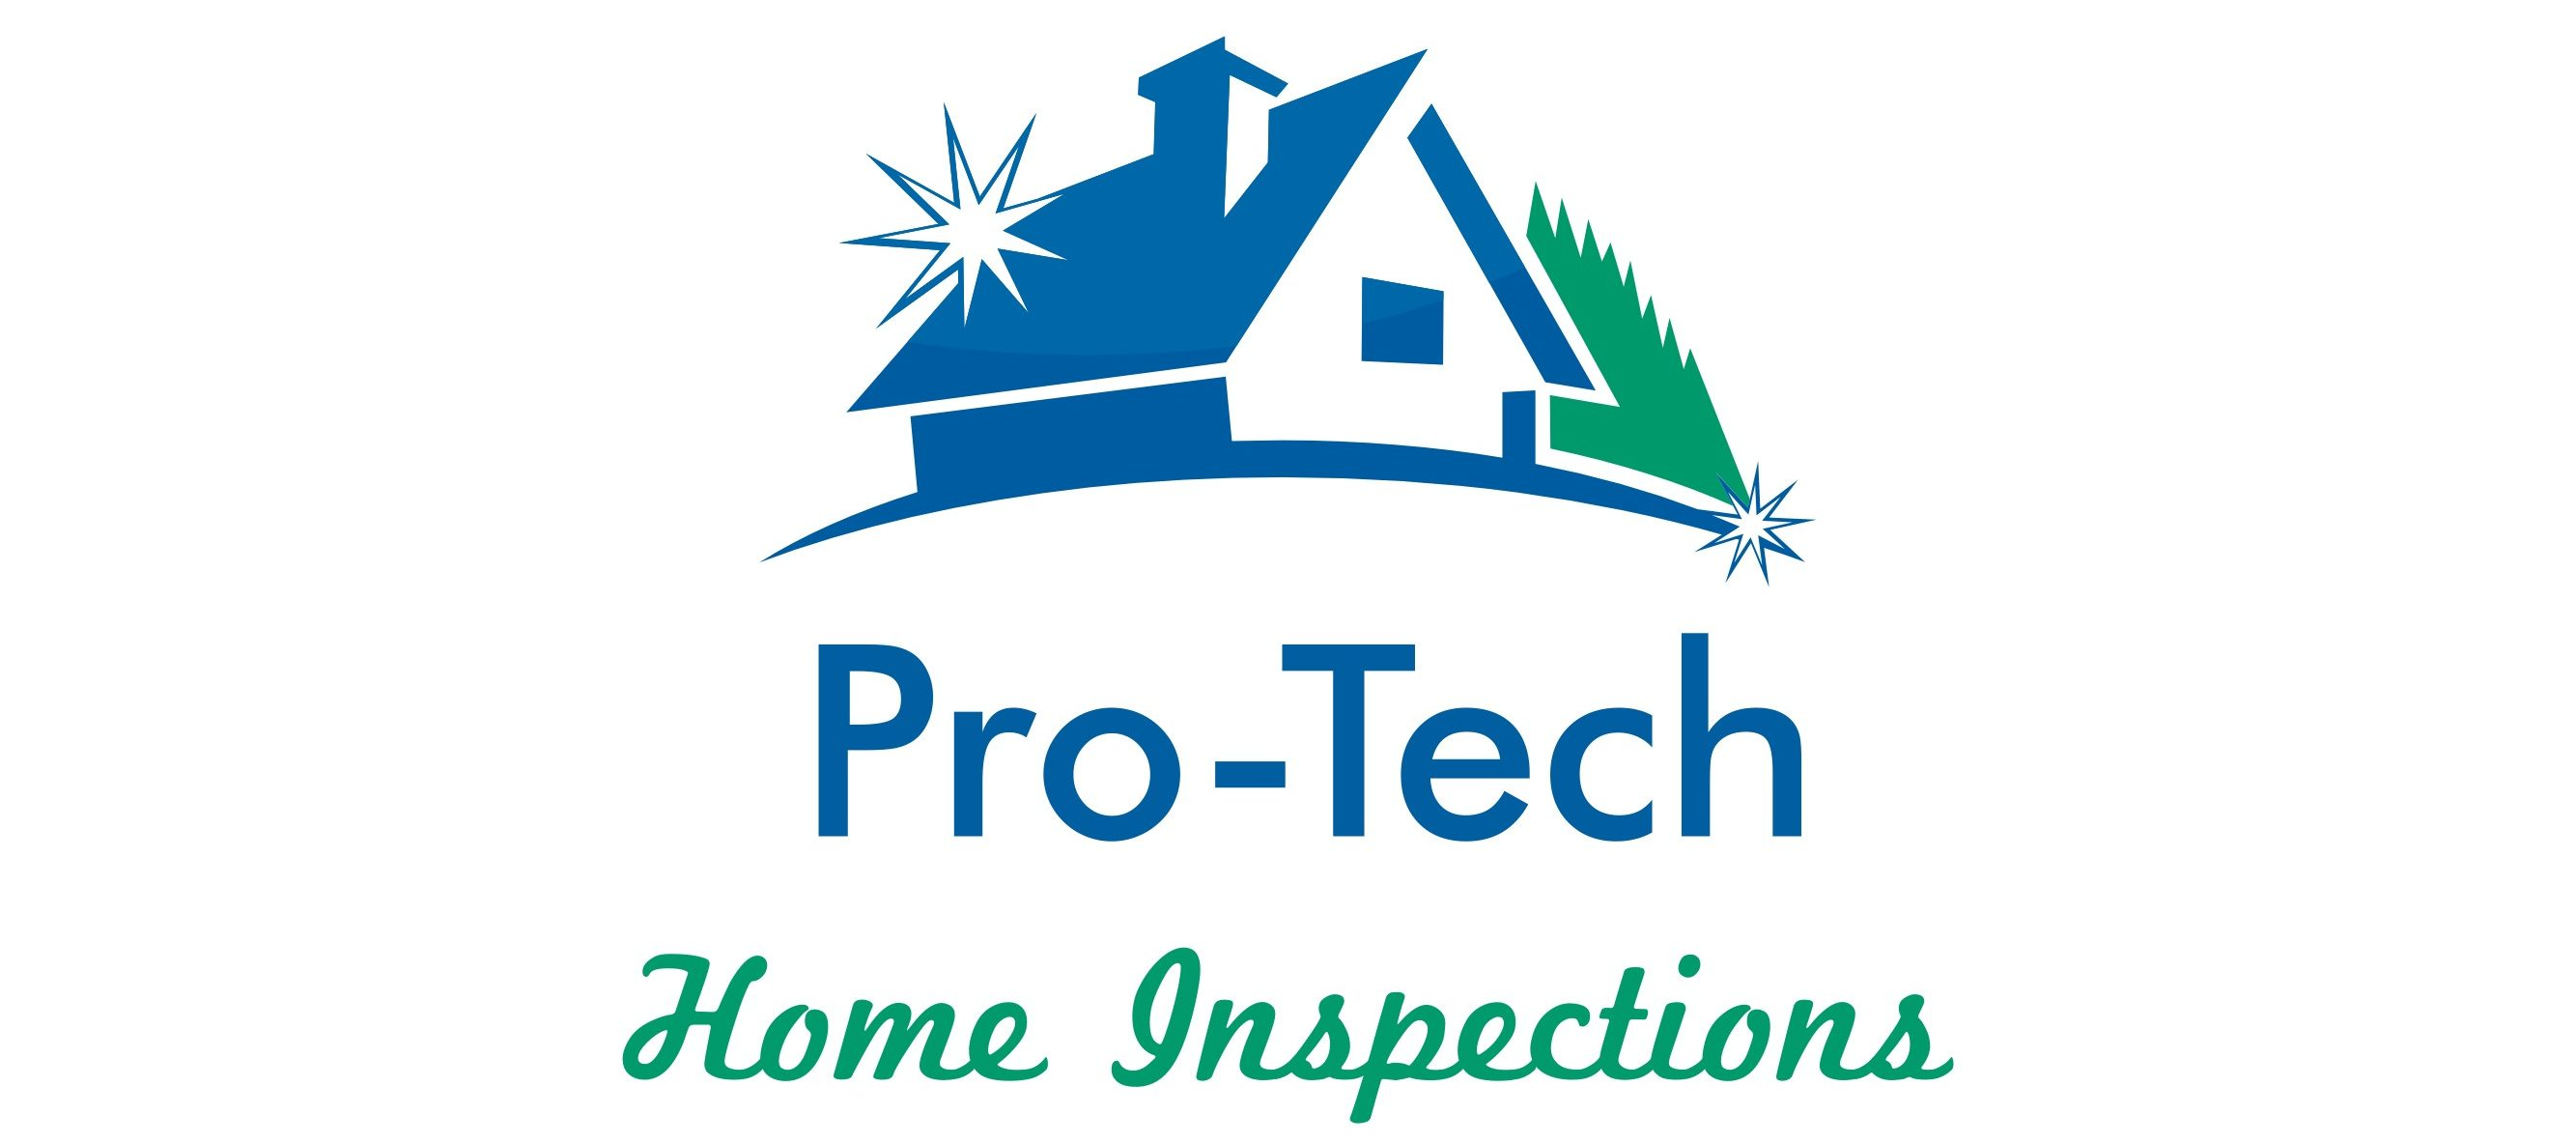 Pro-Tech Home Inspections 206-651-5334